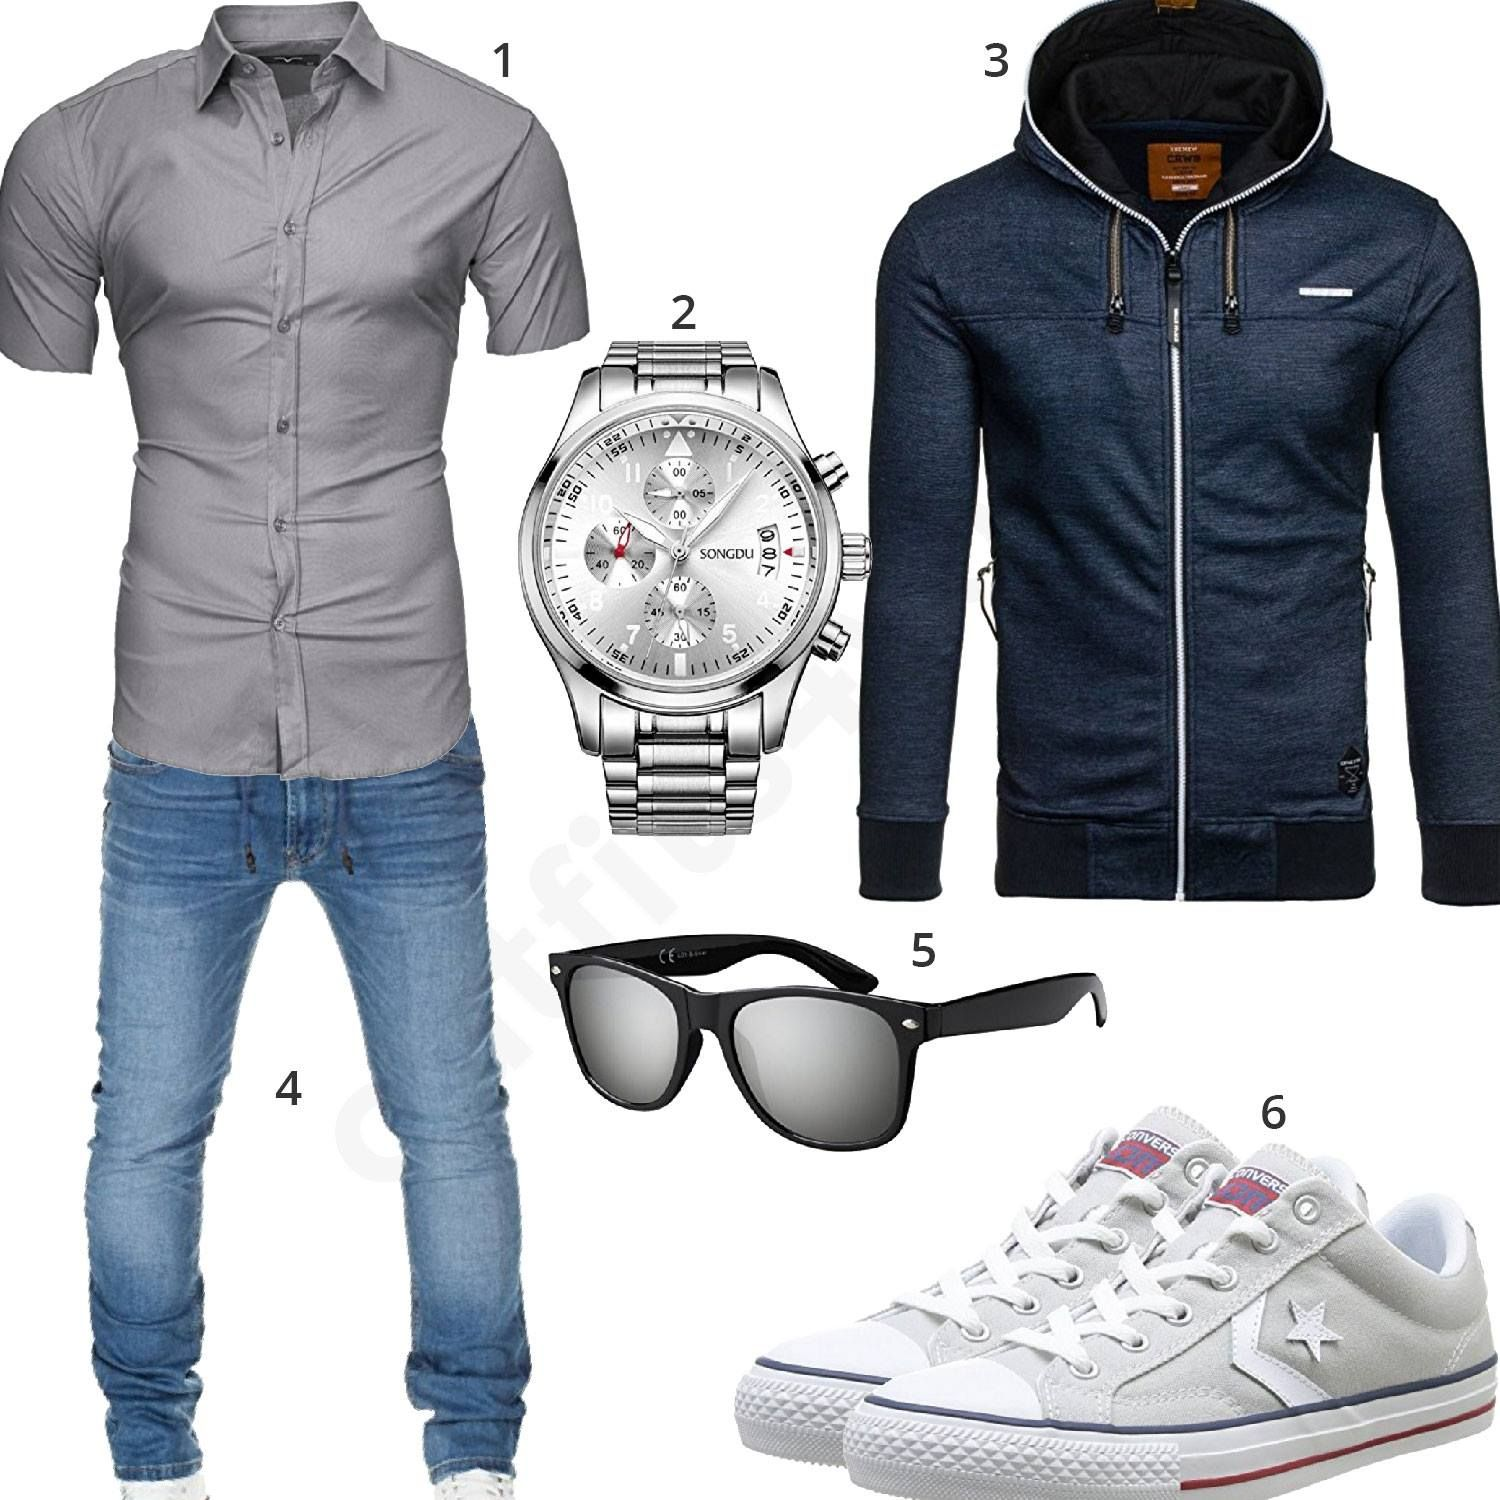 m nner outfit mit kurz rmeligem hemd songdu armbanduhr bolf hoodie grauem sonnenbrille. Black Bedroom Furniture Sets. Home Design Ideas